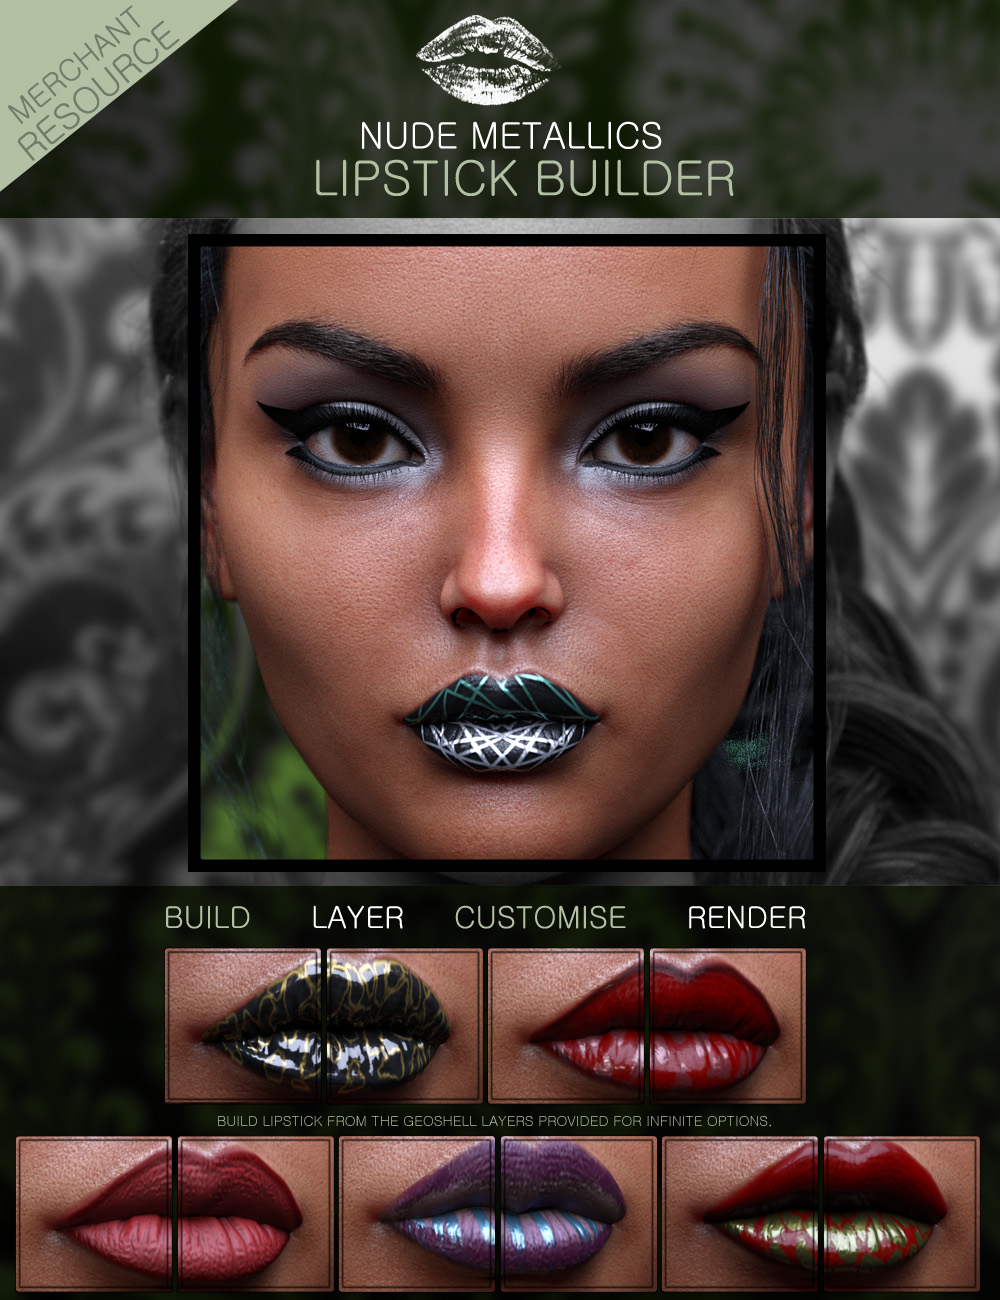 Nude Metallics Lipstick Builder Merchant Resource Genesis 8 Females by: ForbiddenWhispers, 3D Models by Daz 3D